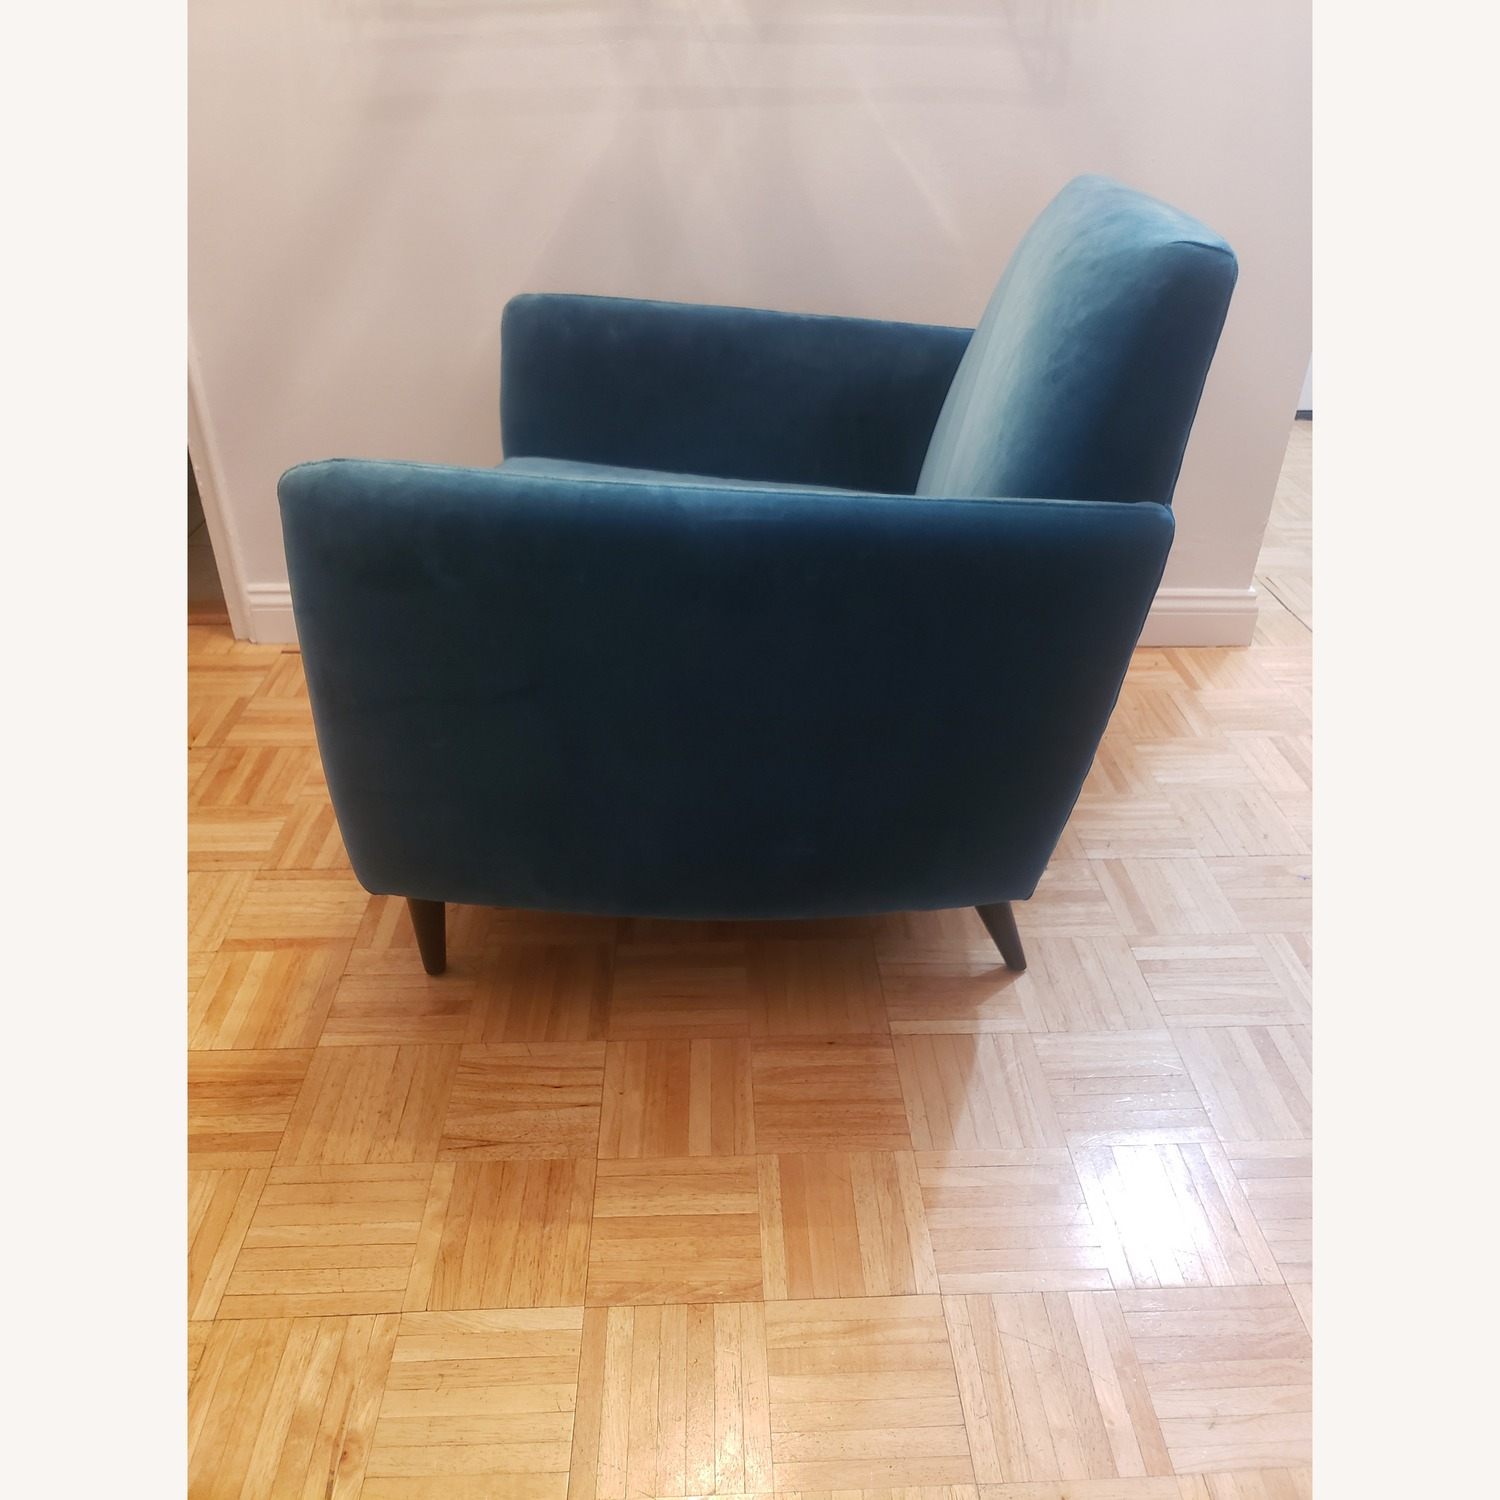 CB2 Parlour Chair in Cyan (Blue) Velvet - image-2